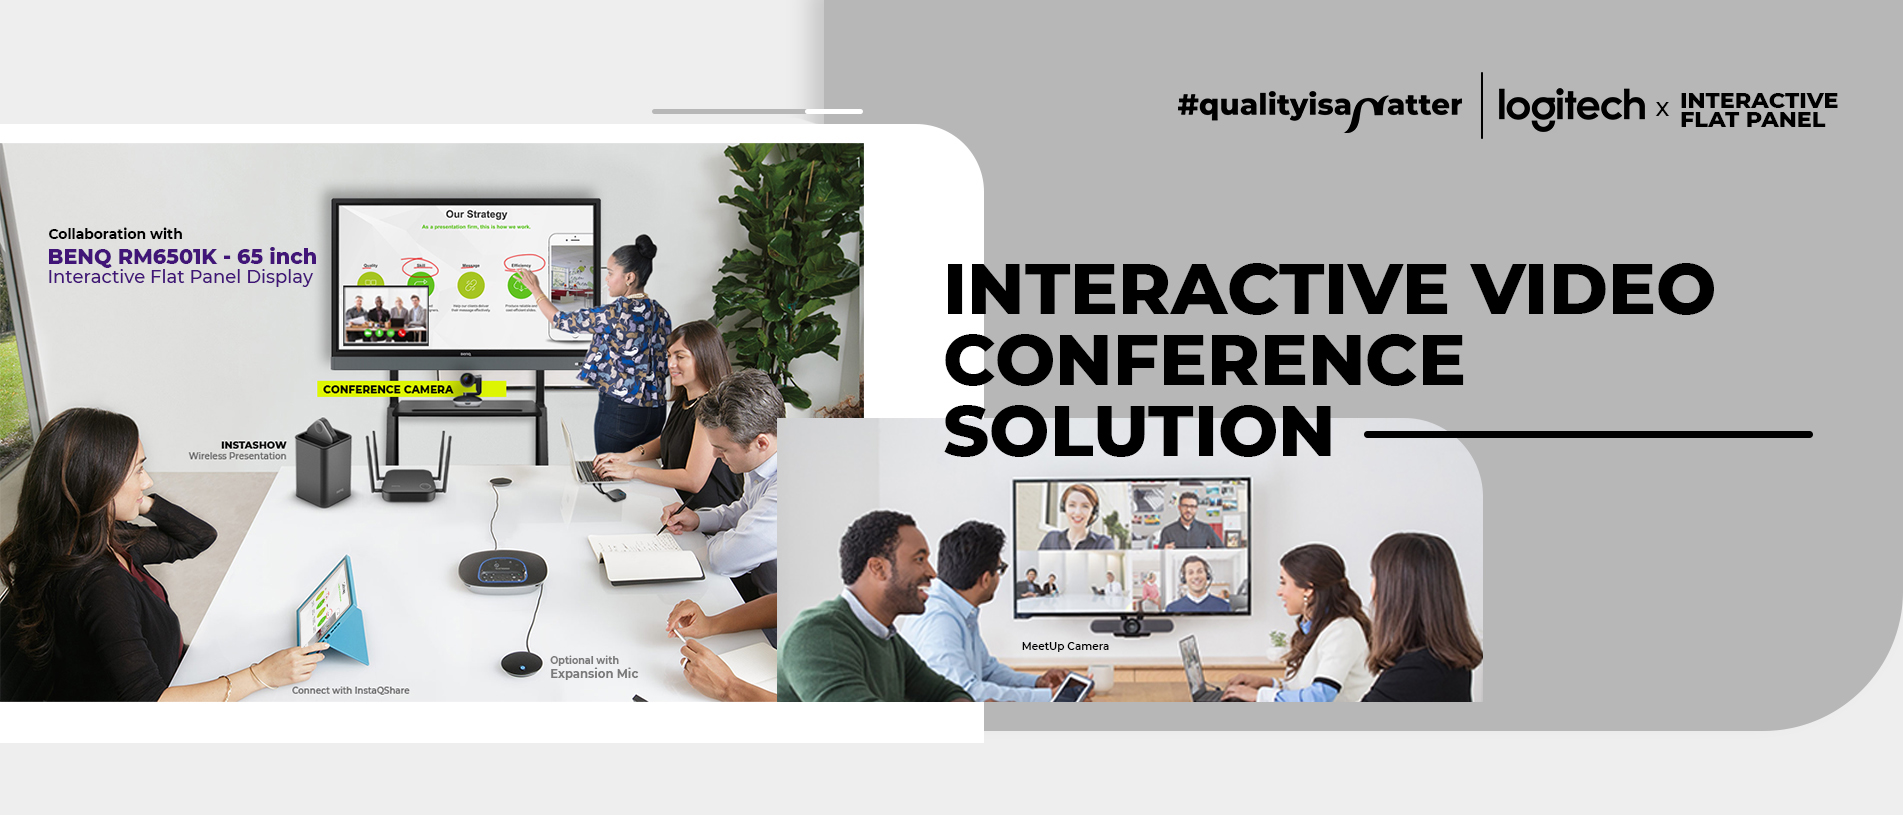 interactive video conference solution slider